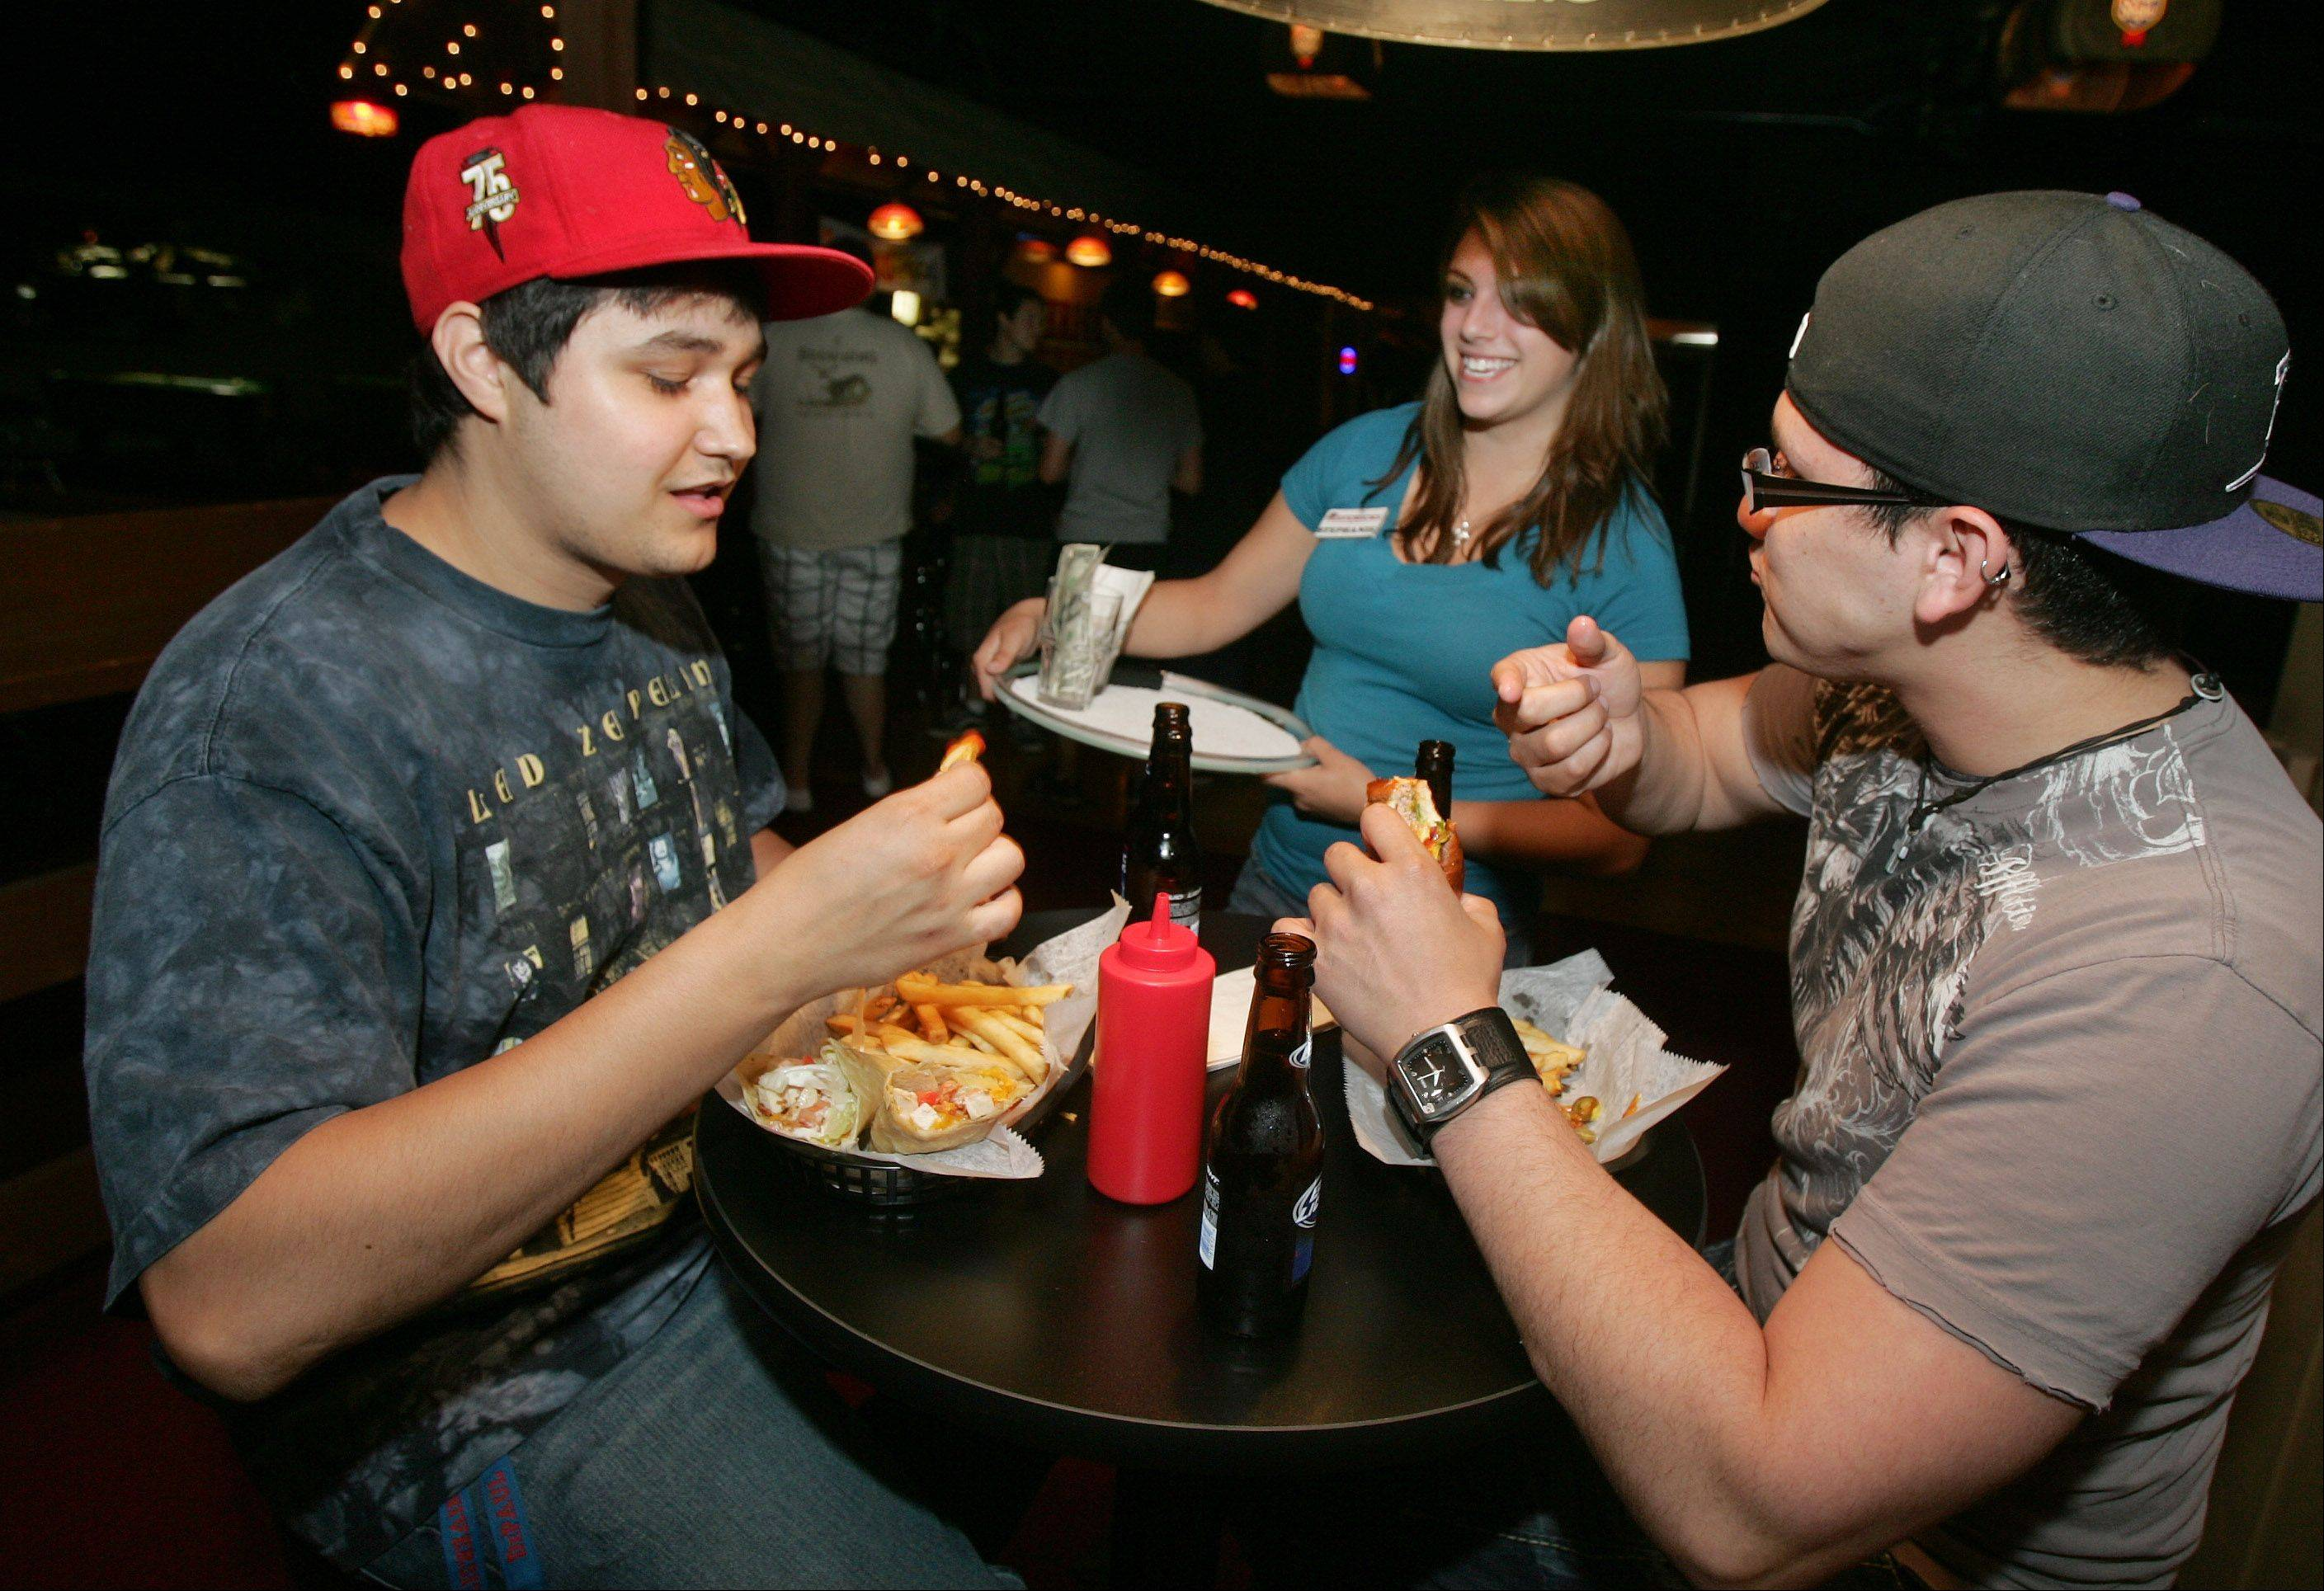 Brandon Ivanovic, left, and Danny Servellon, both of Libertyville, talk to waitress Stephanie Van Kooten as they enjoy dinner at Mavericks Night Club in Mundelein.